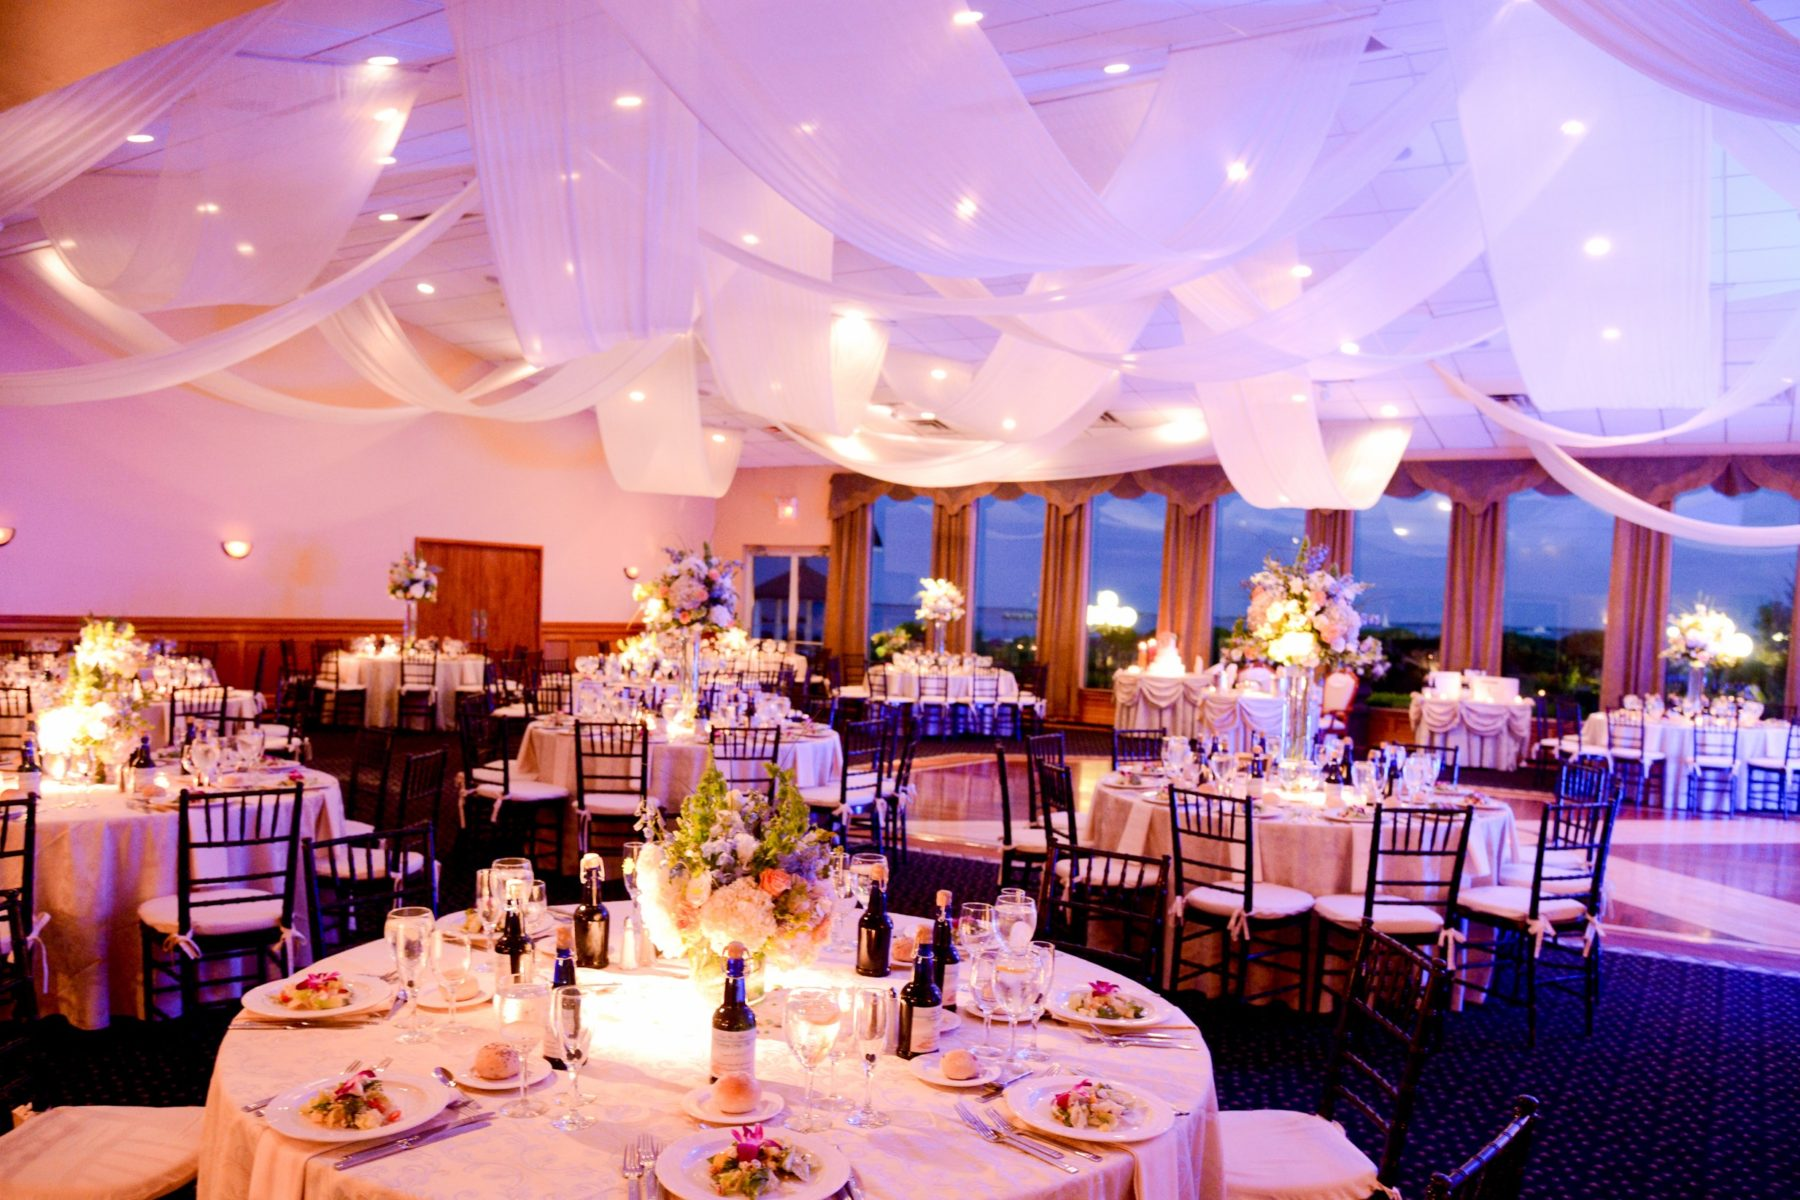 Luxury Venues: The Hamptons - Sonal J. Shah Event Consultants, LLC.